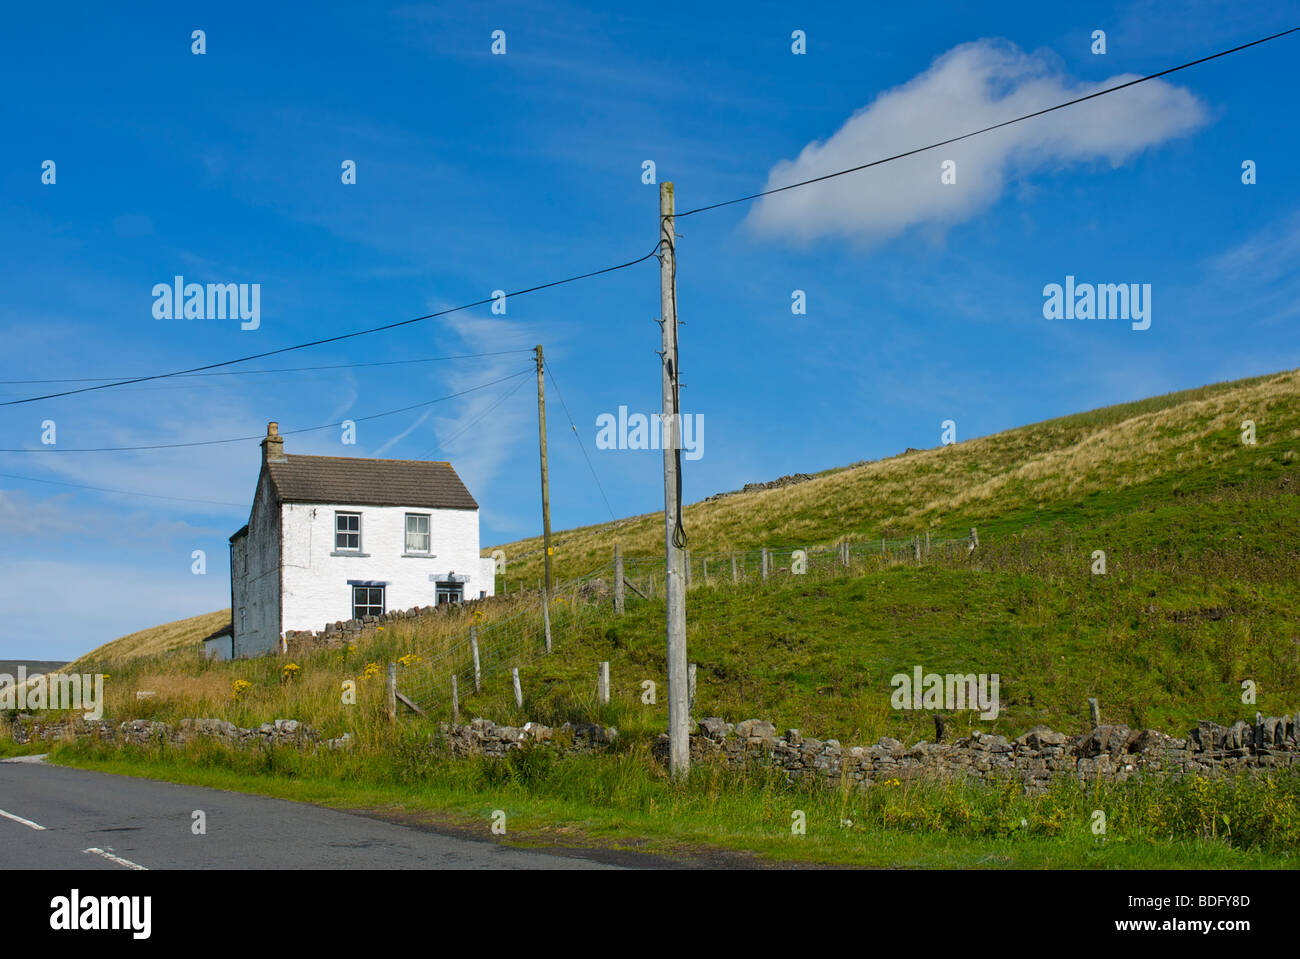 Whitewashed house in Upper Teesdale, County Durham, England UK - Stock Image